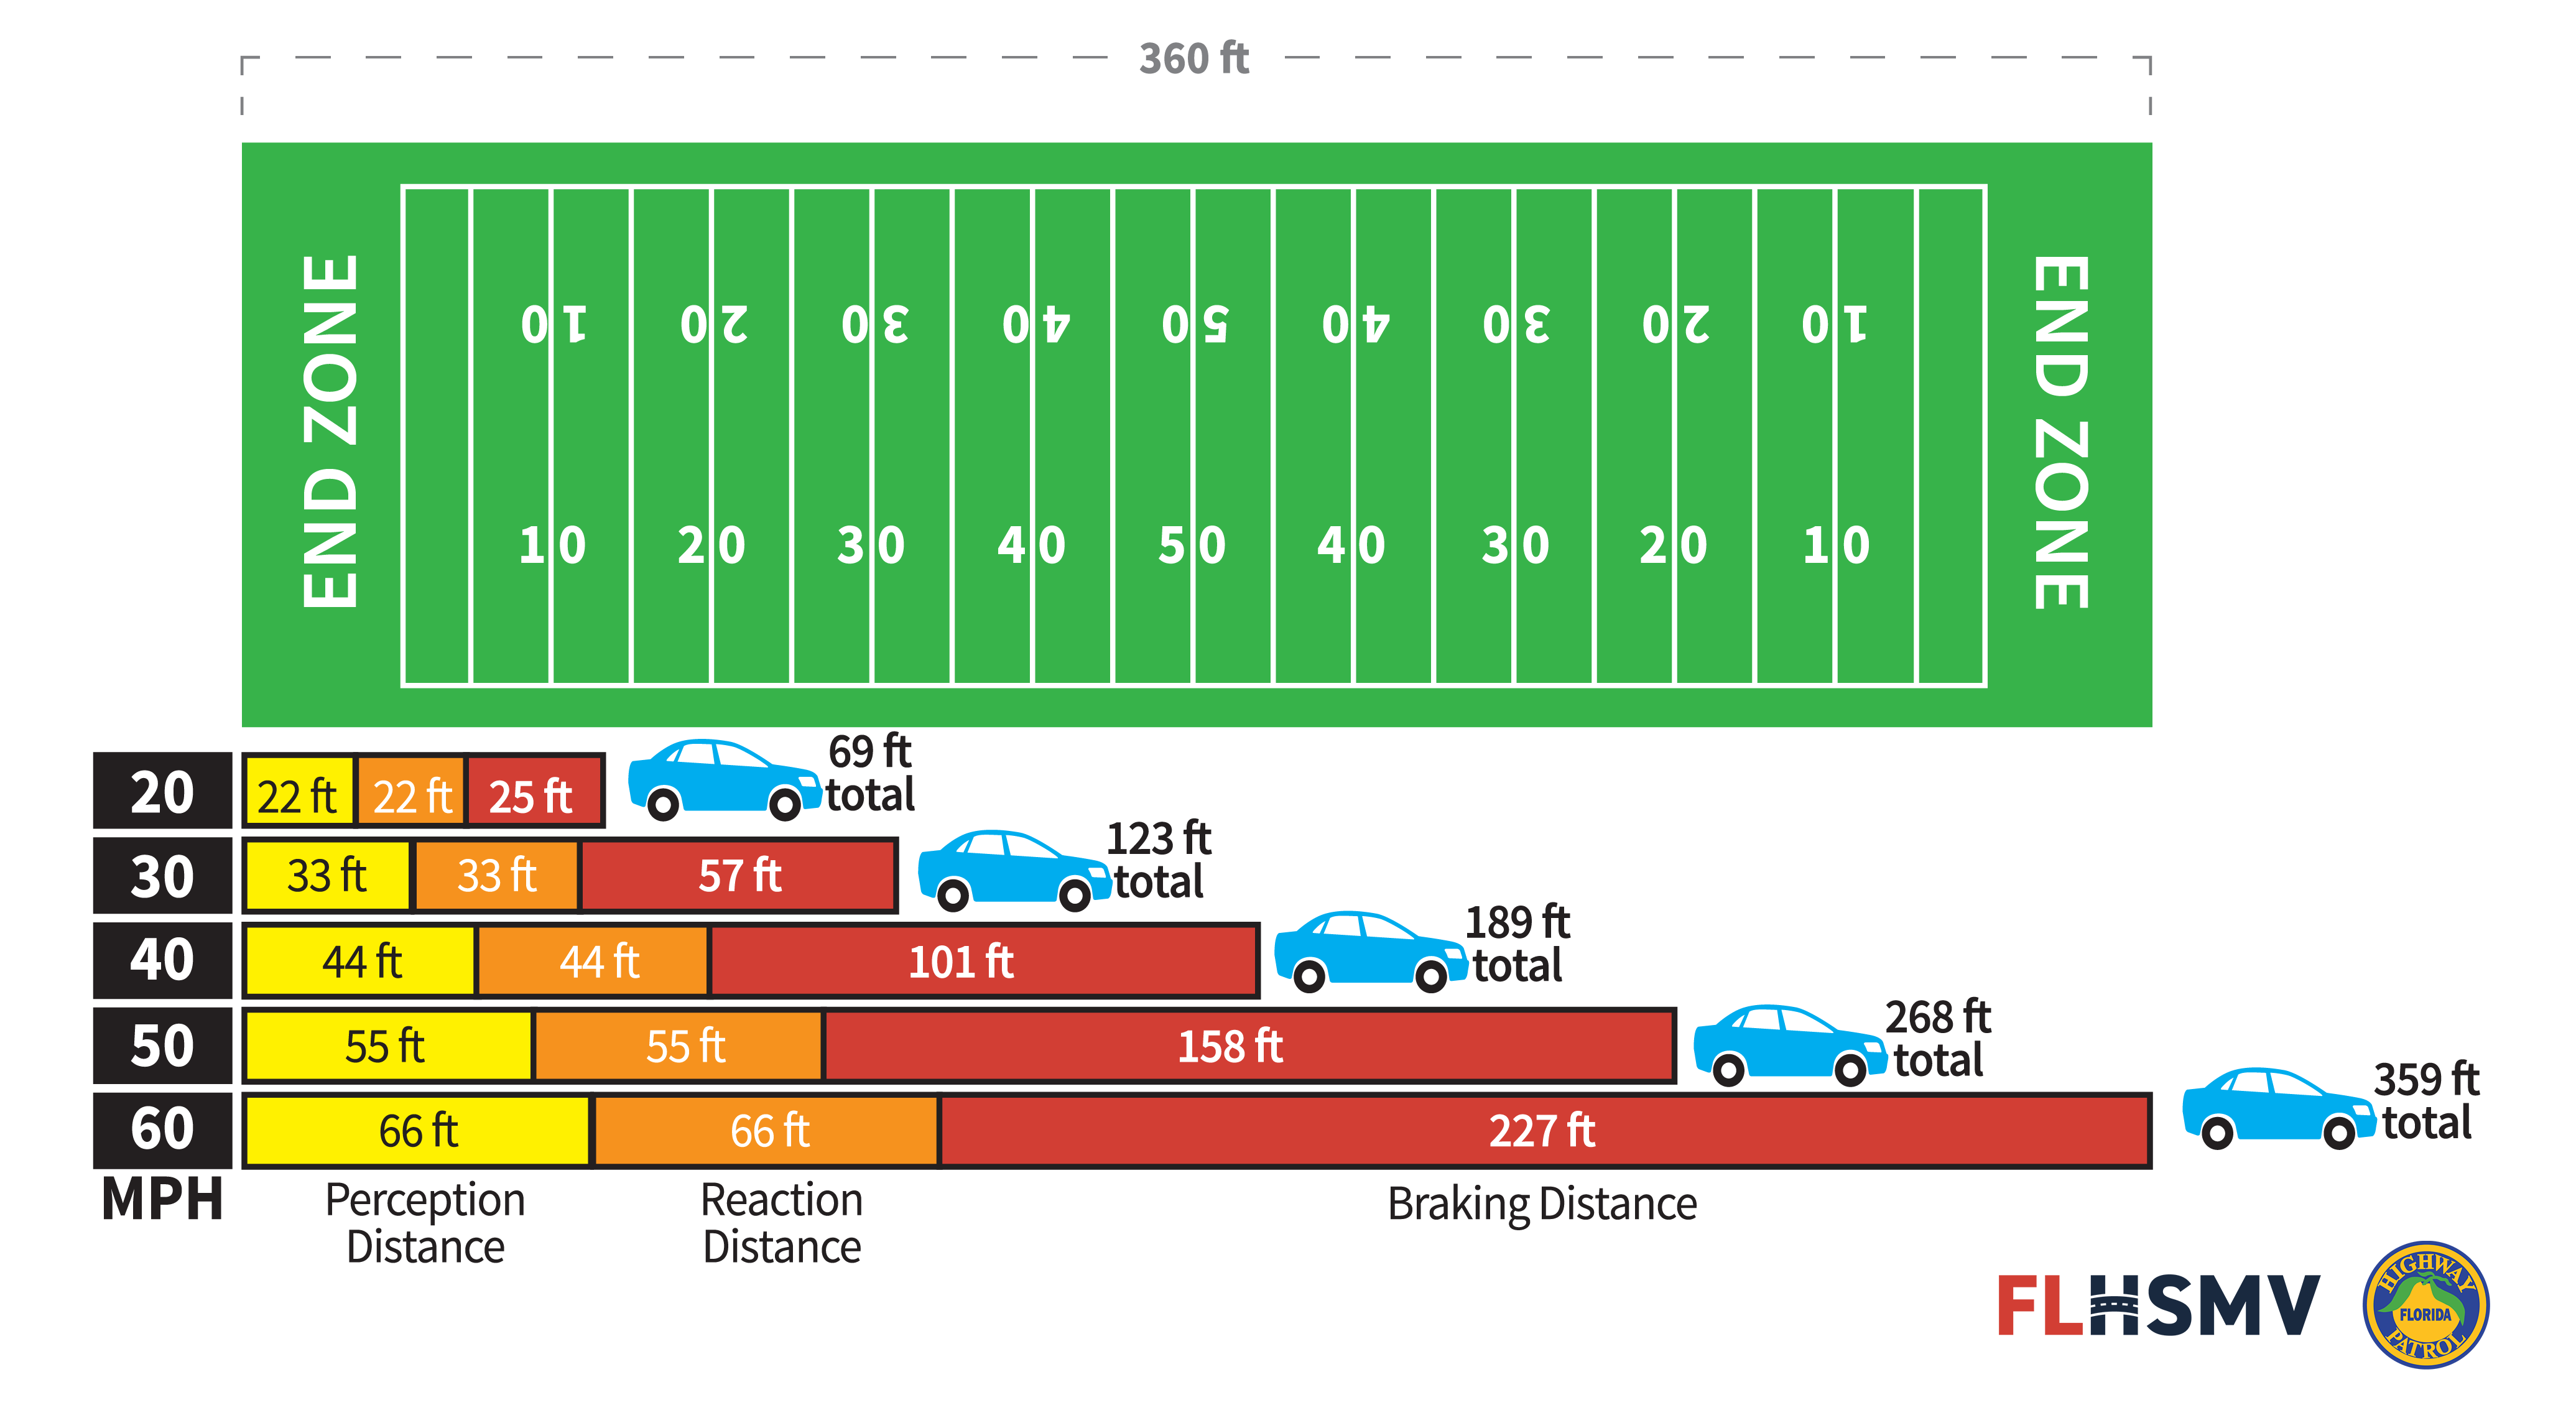 distracted driving football field image